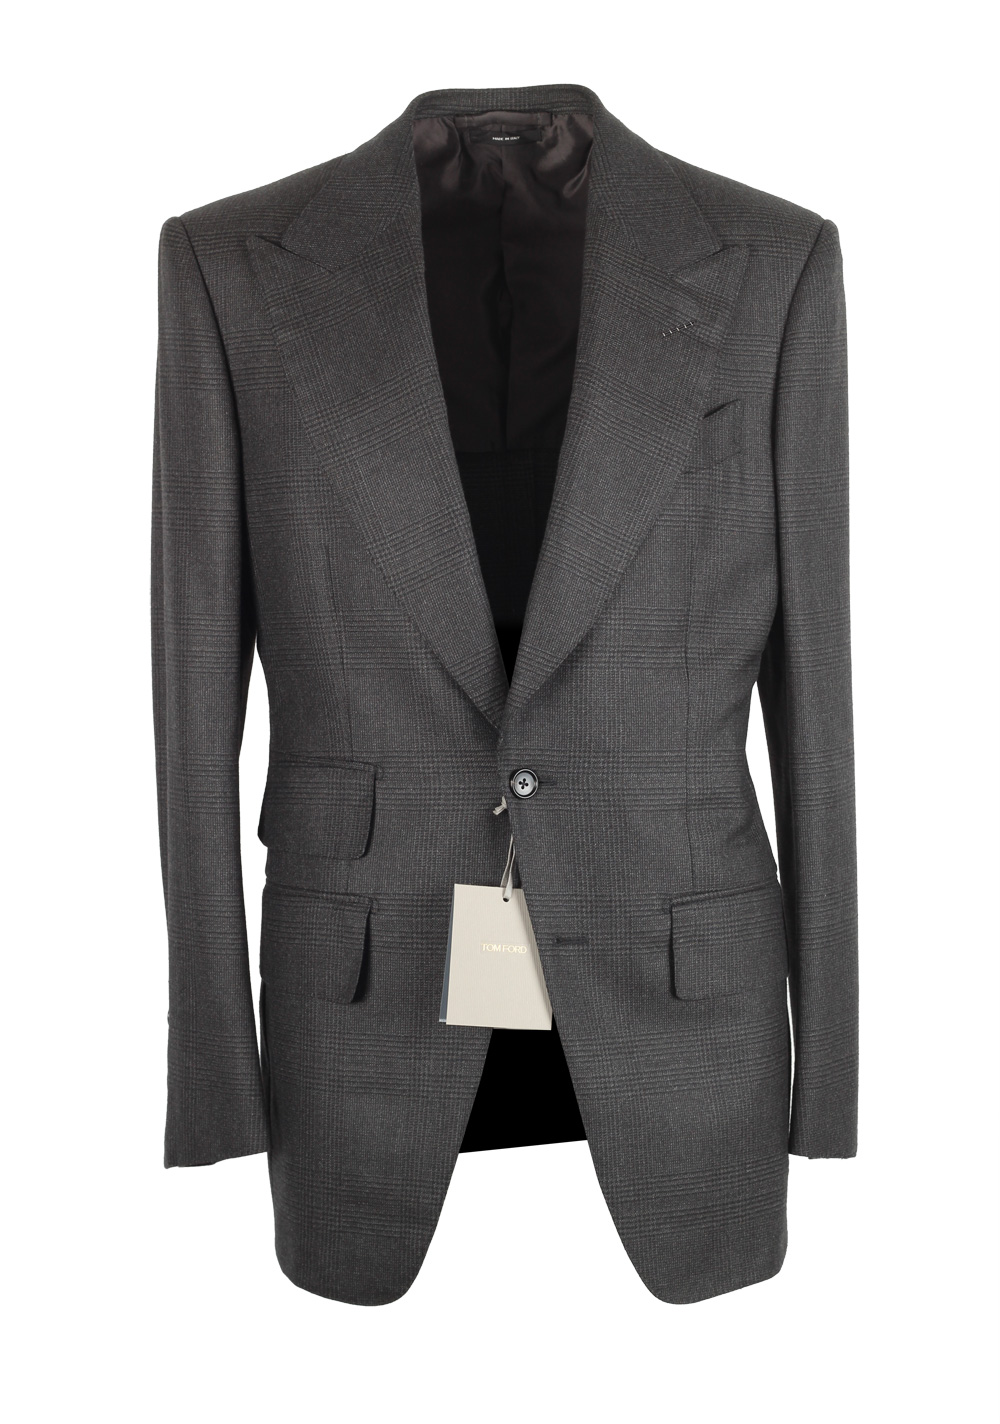 TOM FORD Atticus Gray Checked Suit Size 46 / 36R U.S.   Costume Limité